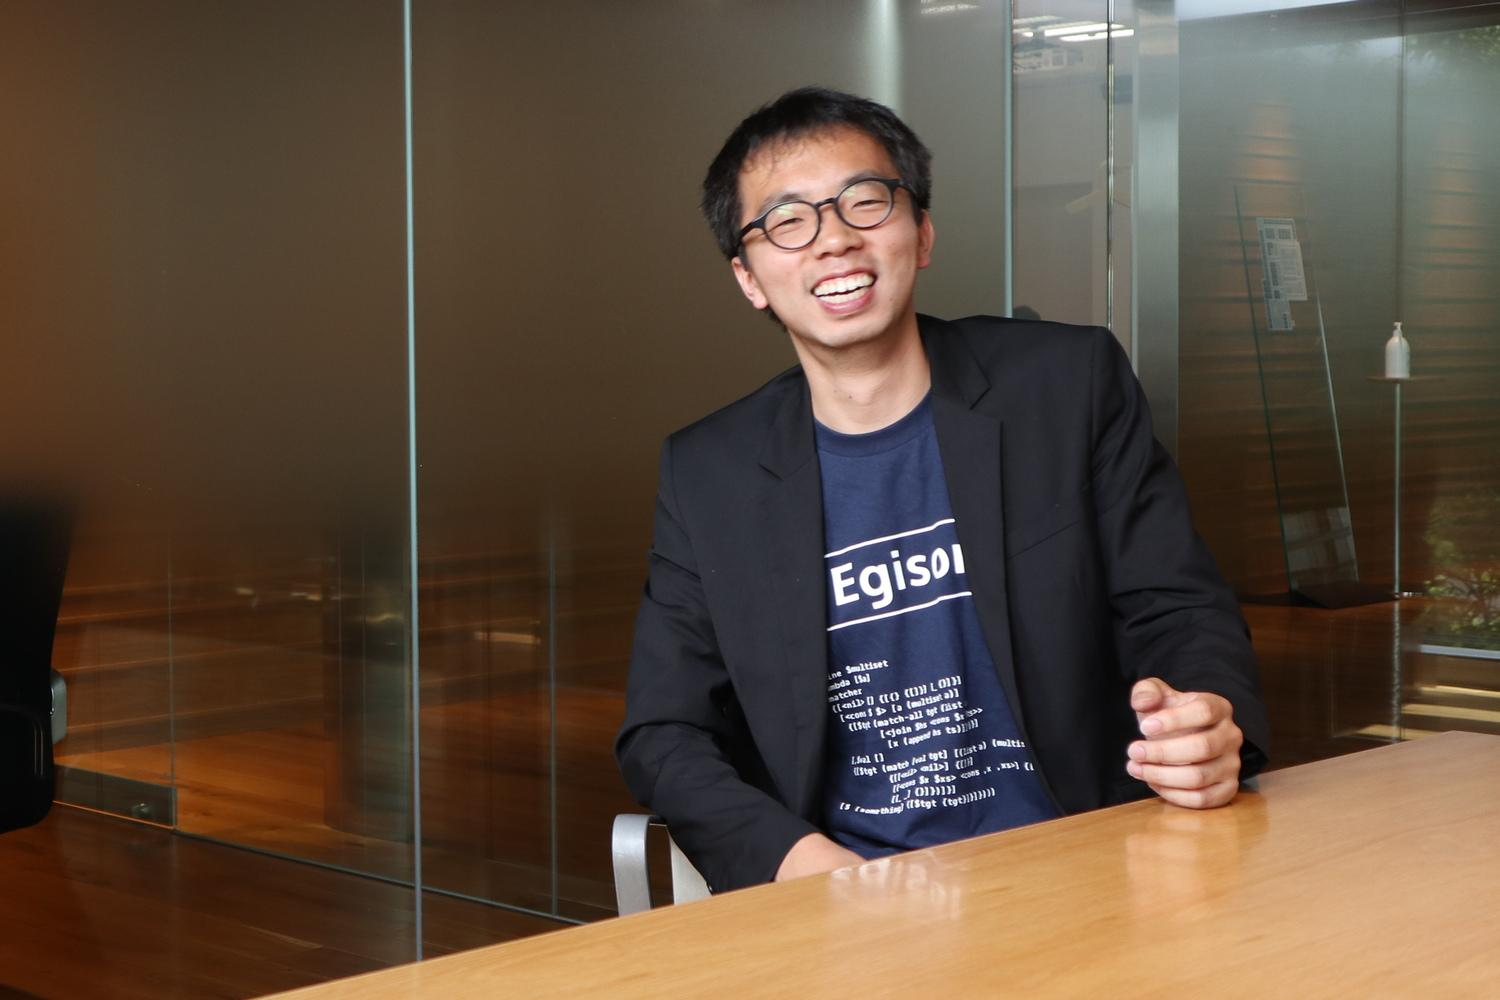 The man behind Egison: Rakuten Today sits down with Satoshi Egi